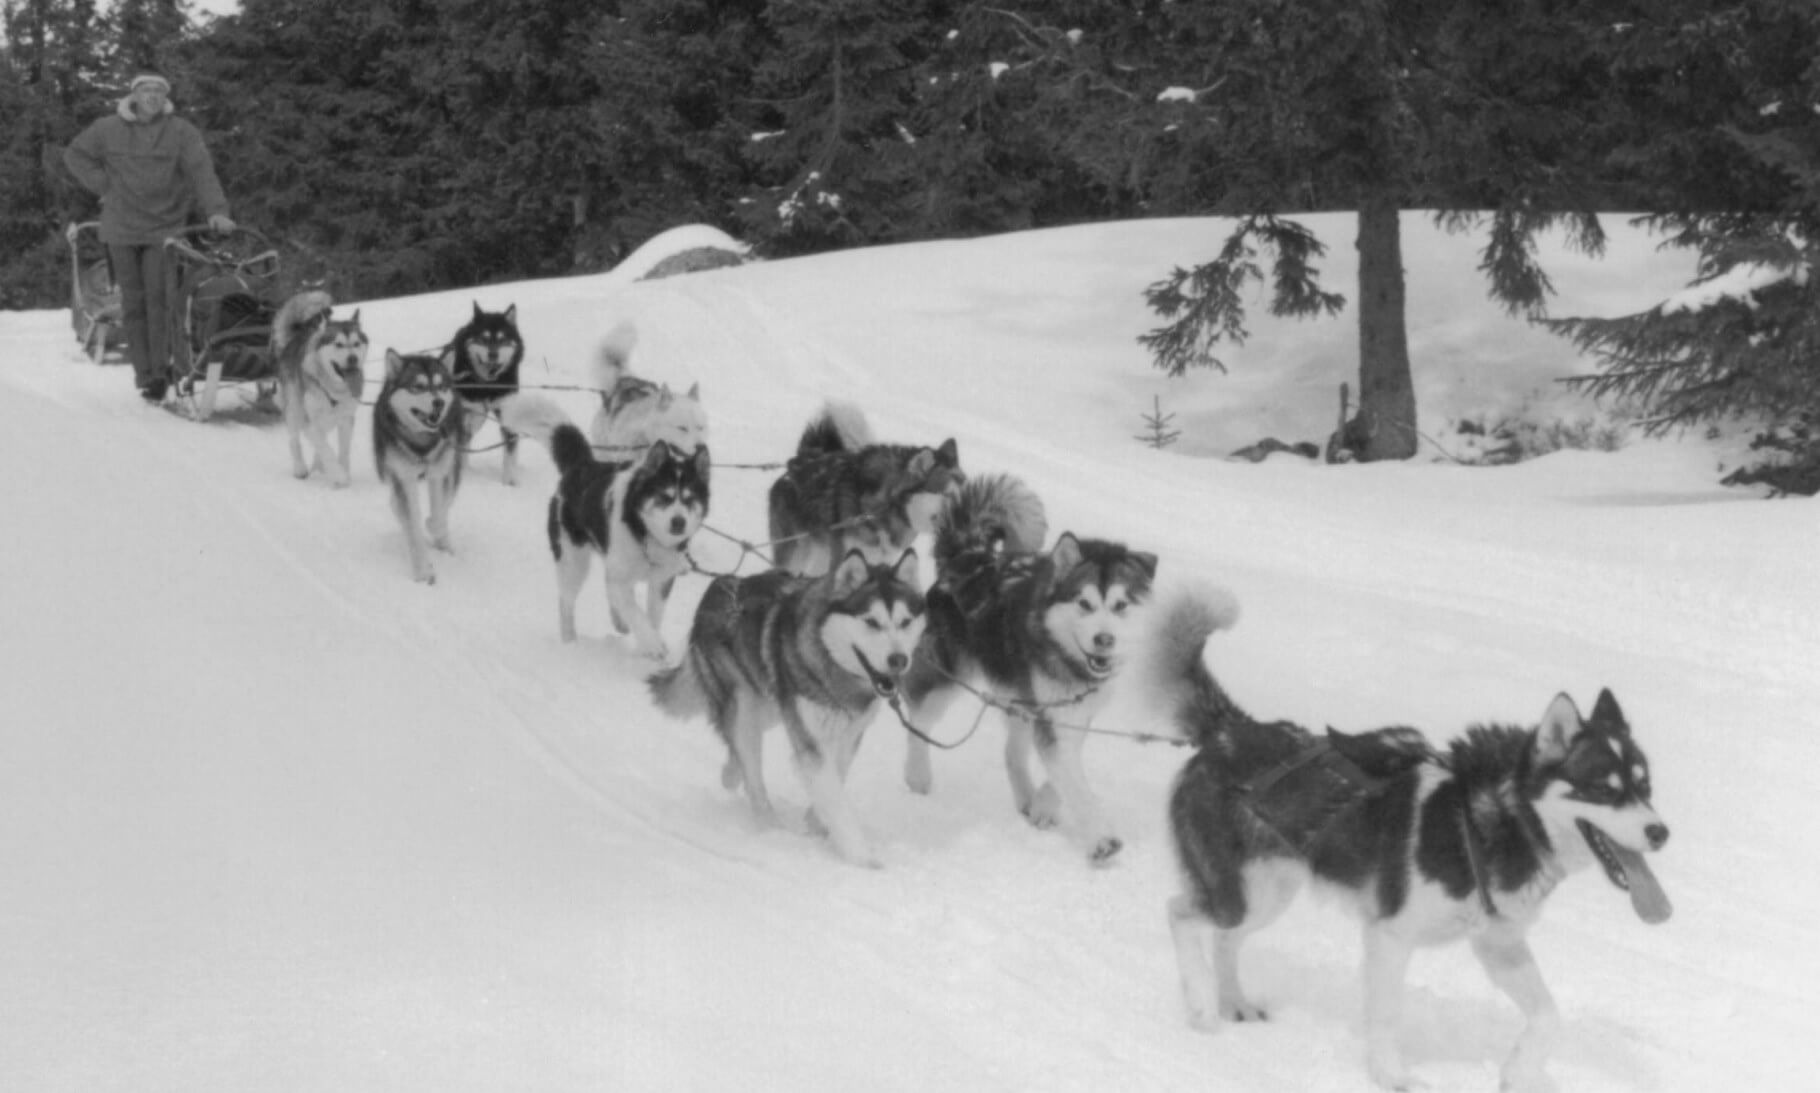 Husky dog sled team going through the snow in Norway